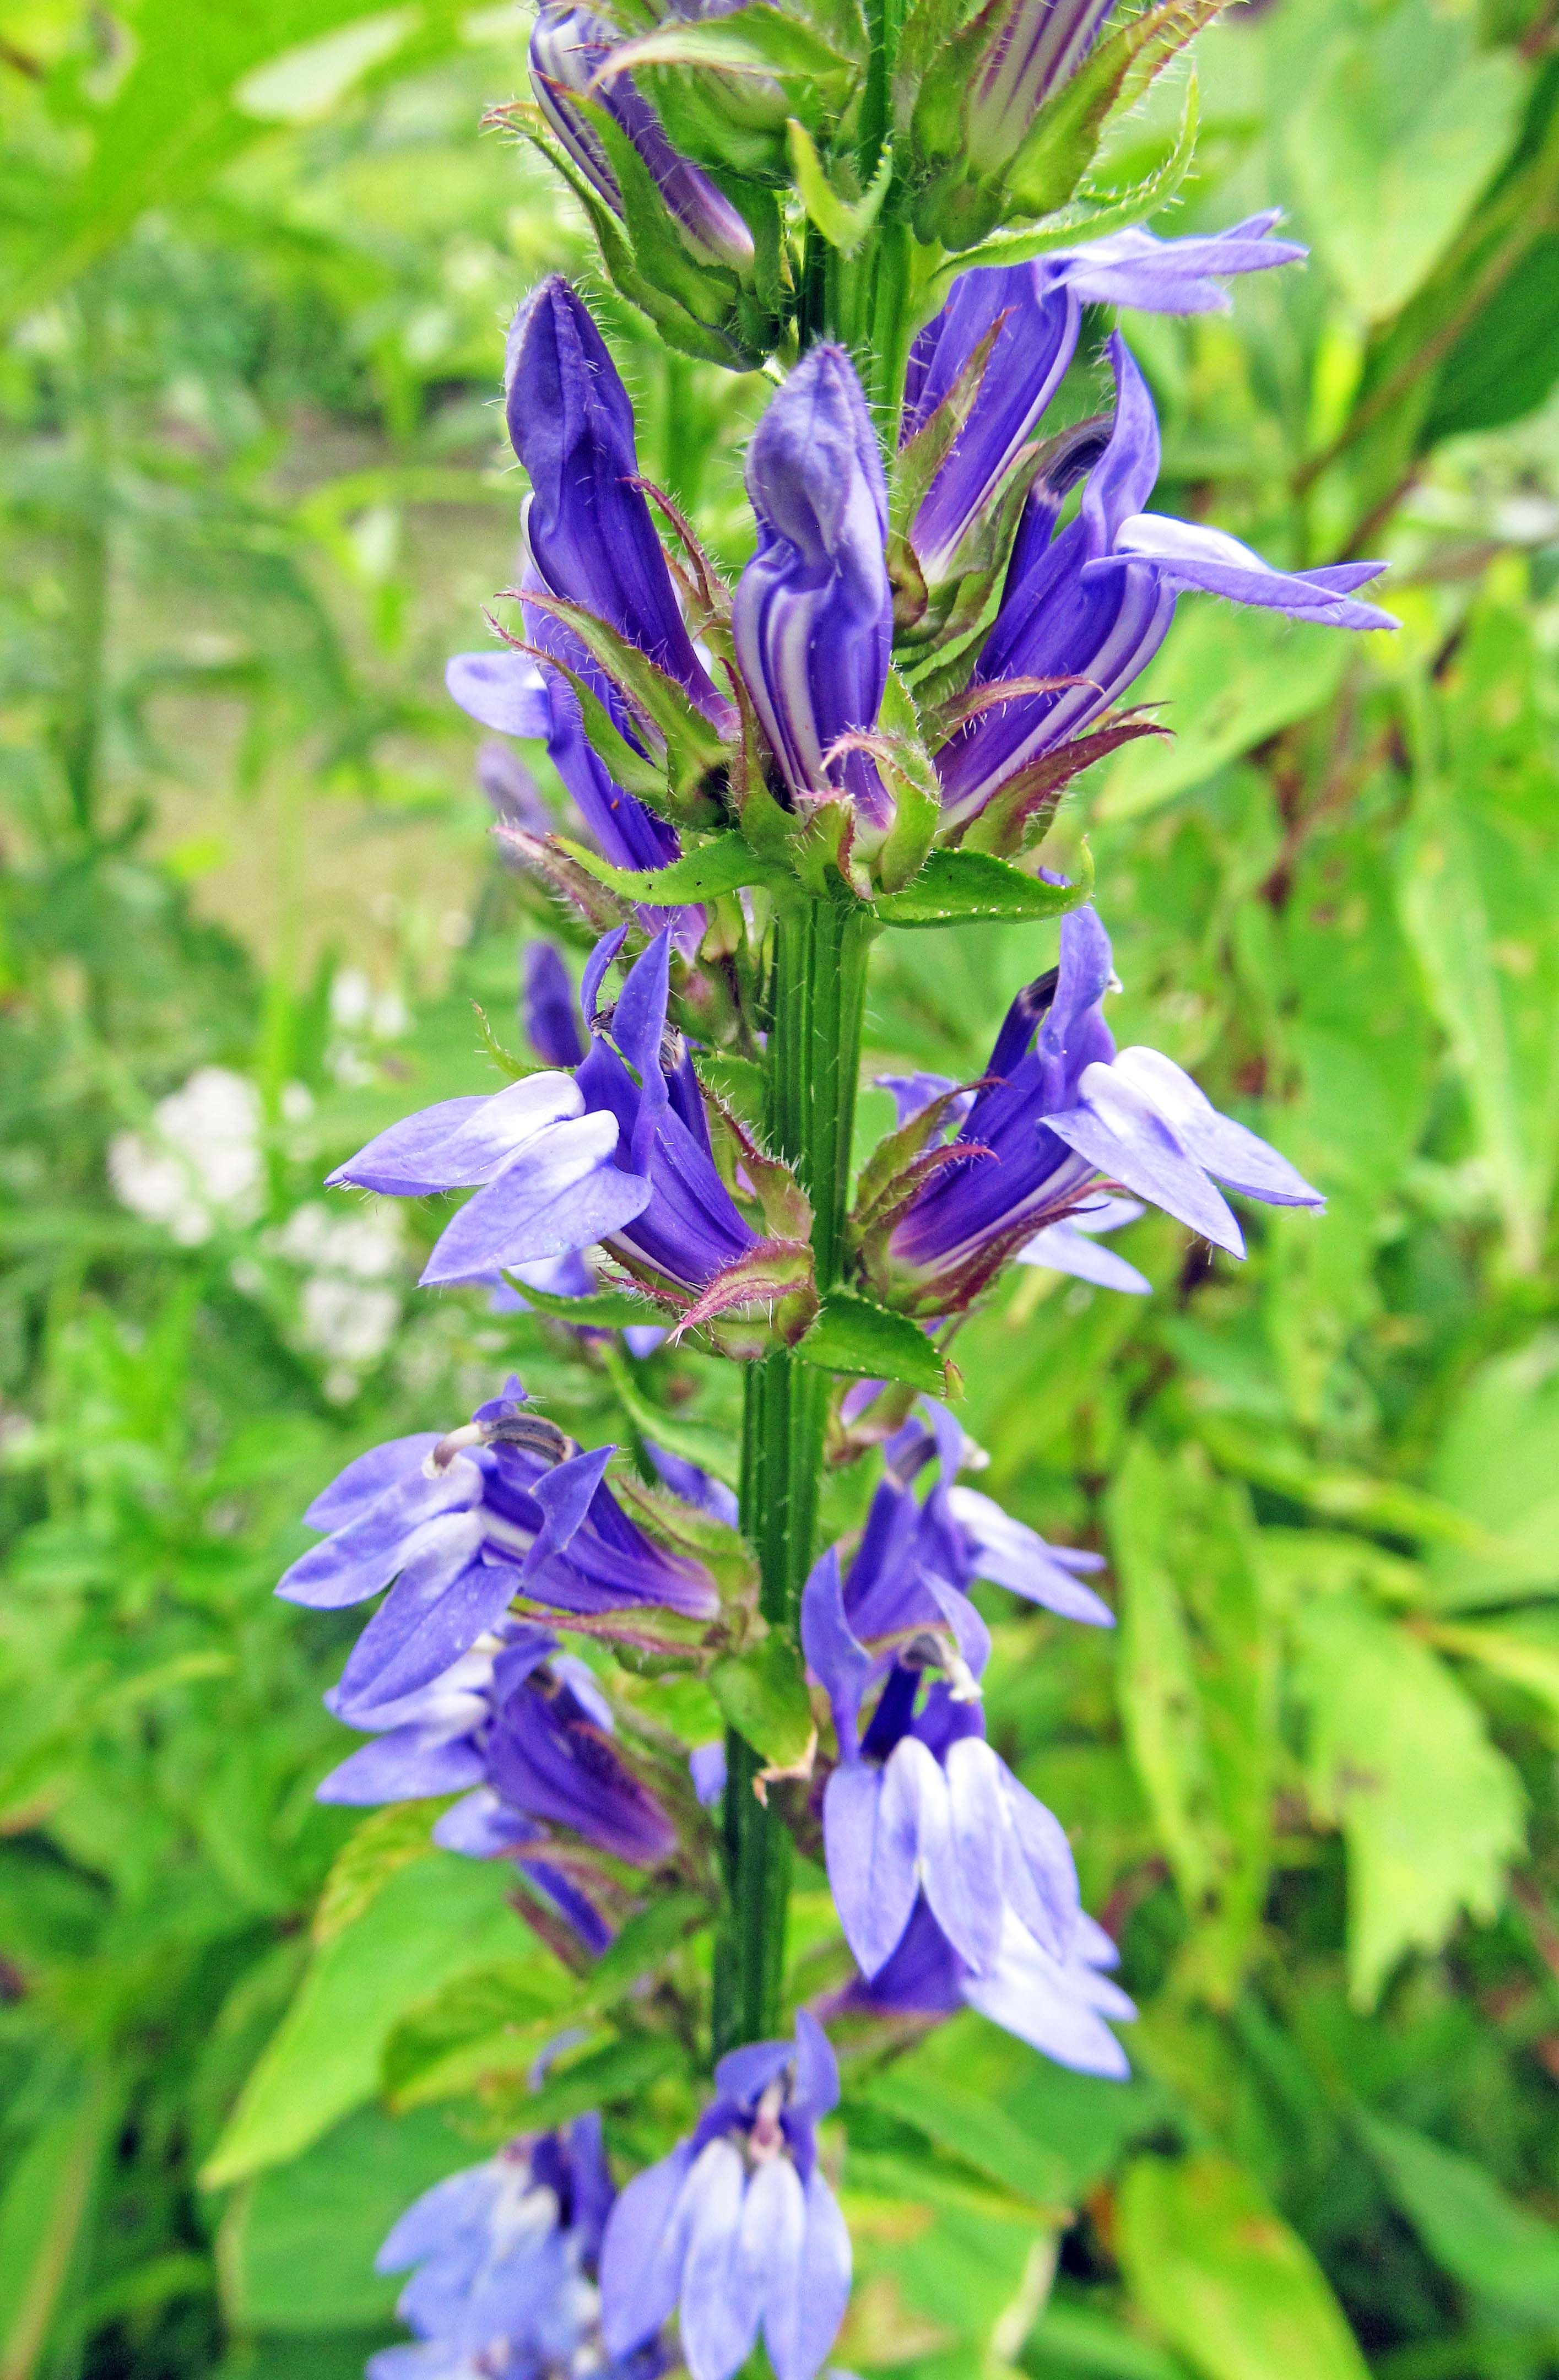 Lobelia siphilitica it is a medicinal herb that was once used to numerous flowers grow on the stem of this plant leading to more opportunities for pollinators to pollinate izmirmasajfo Images